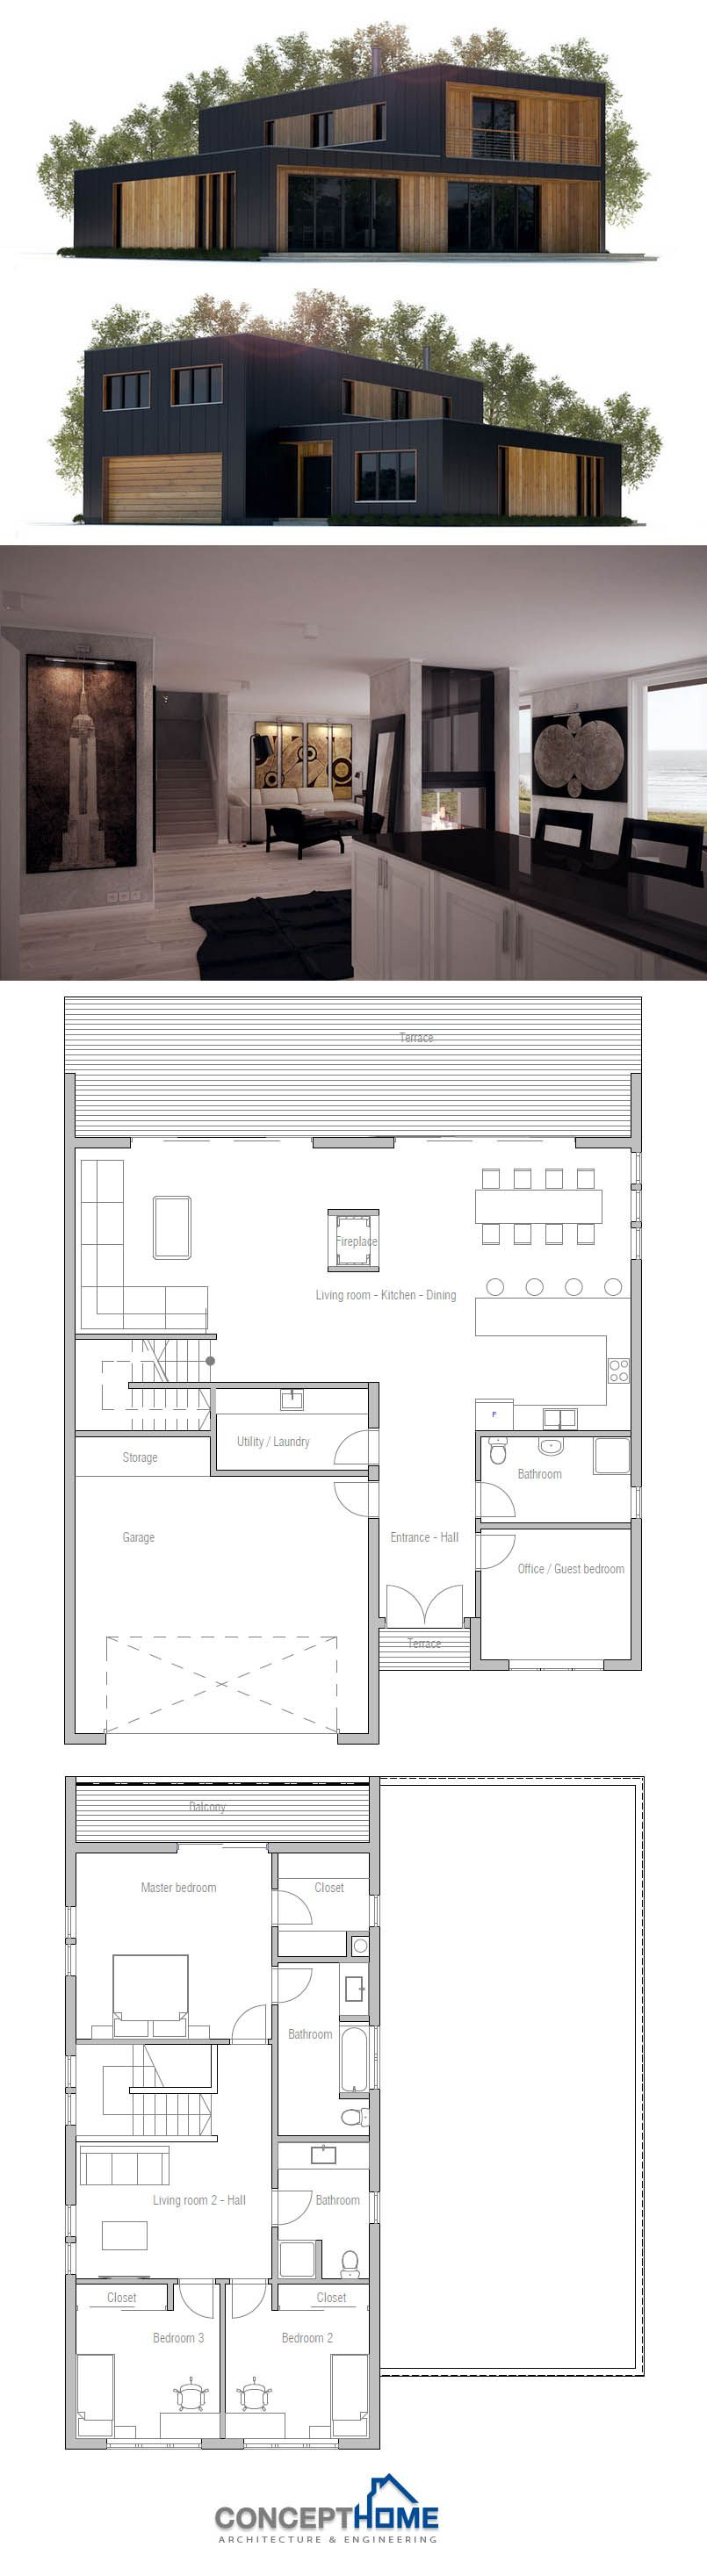 Plan de maison en bois et bardage fonc au look r solument for Plan contemporain